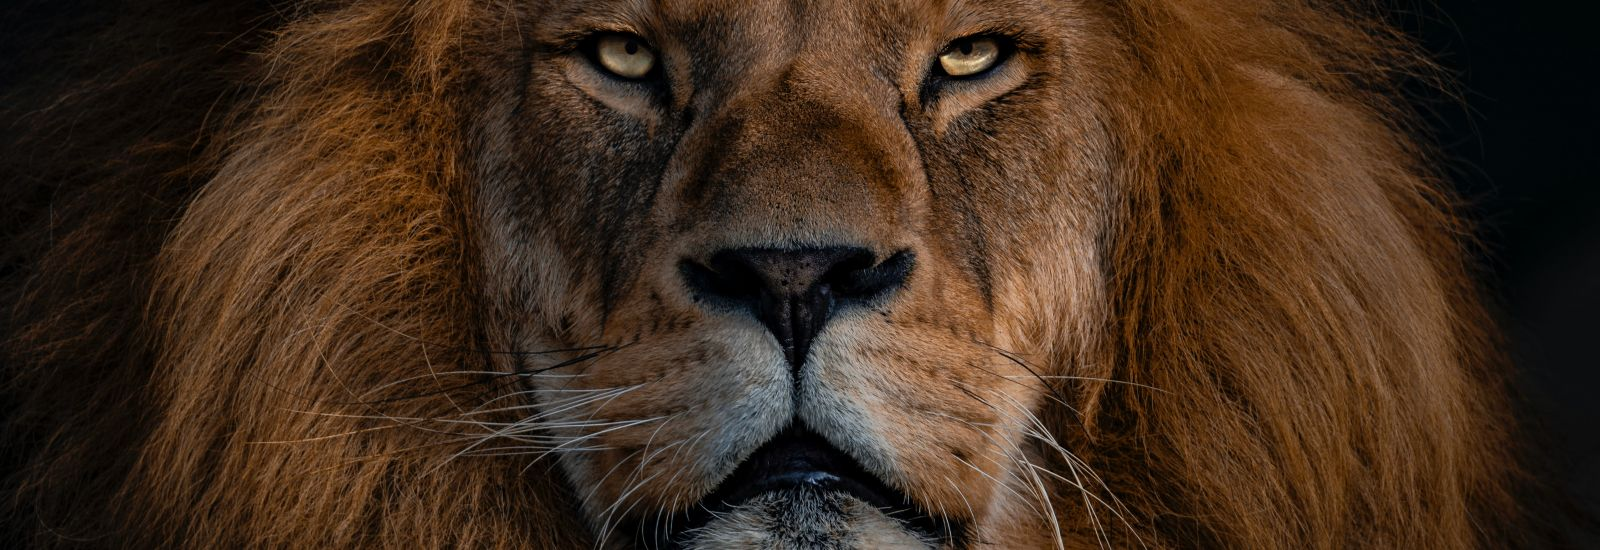 Close-up of a lion's head on a black background